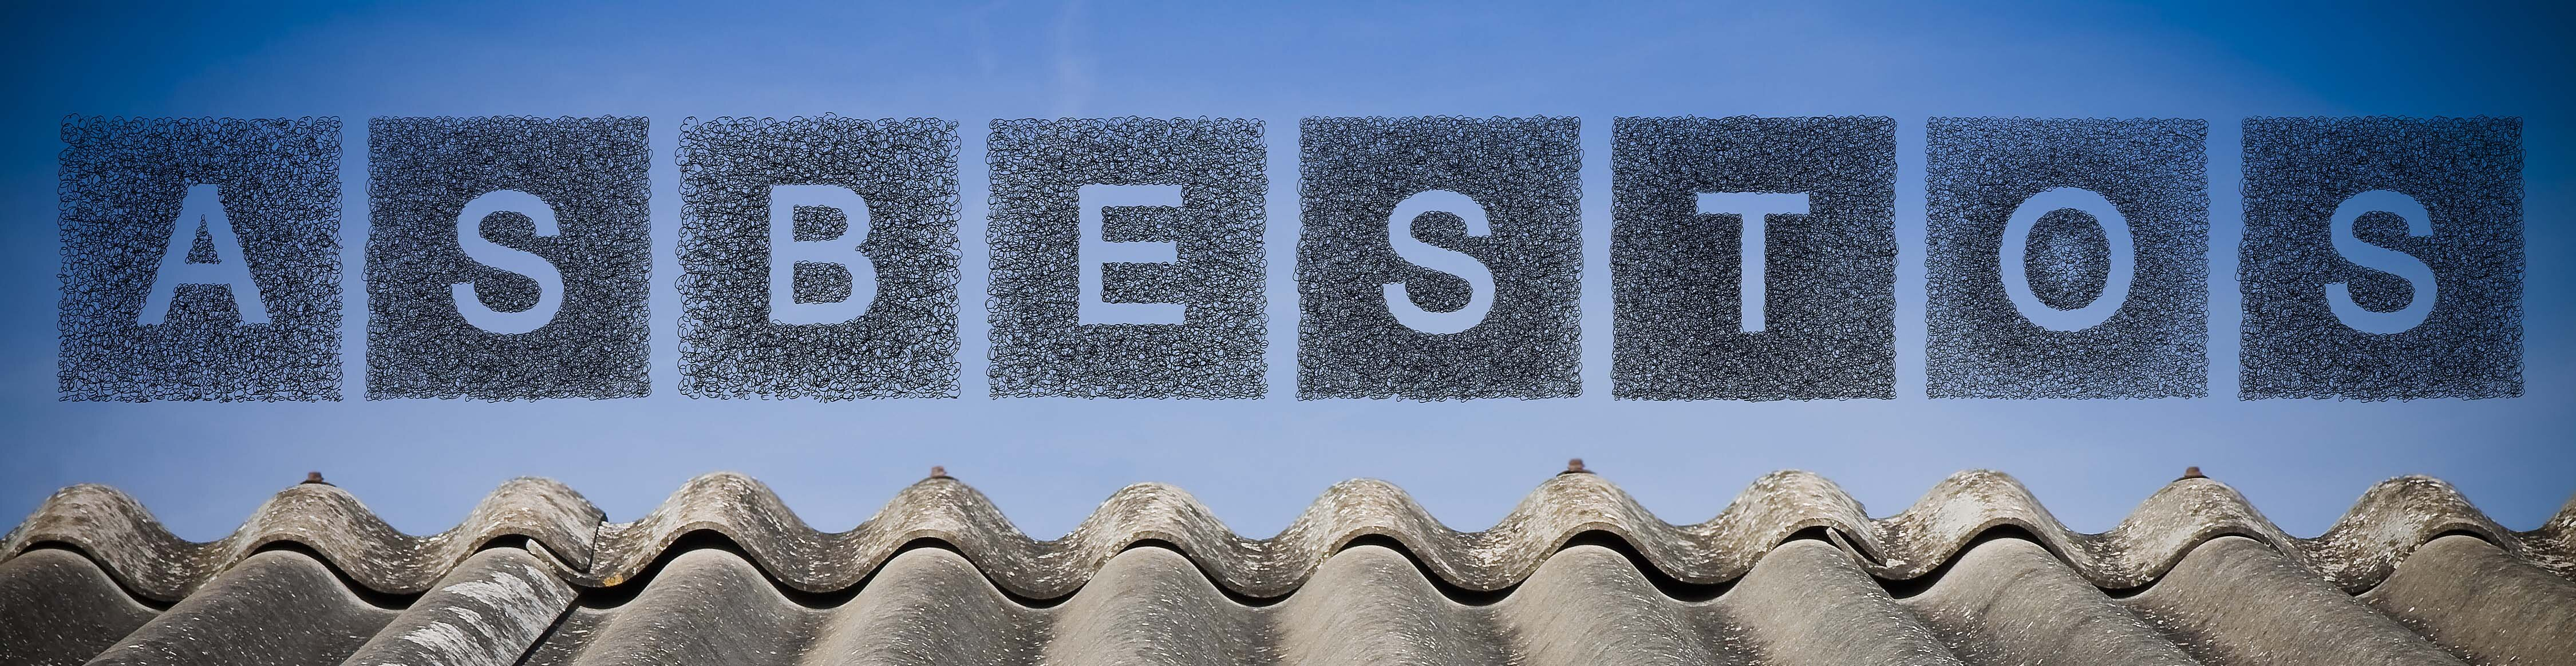 Asbestos and roof ridges